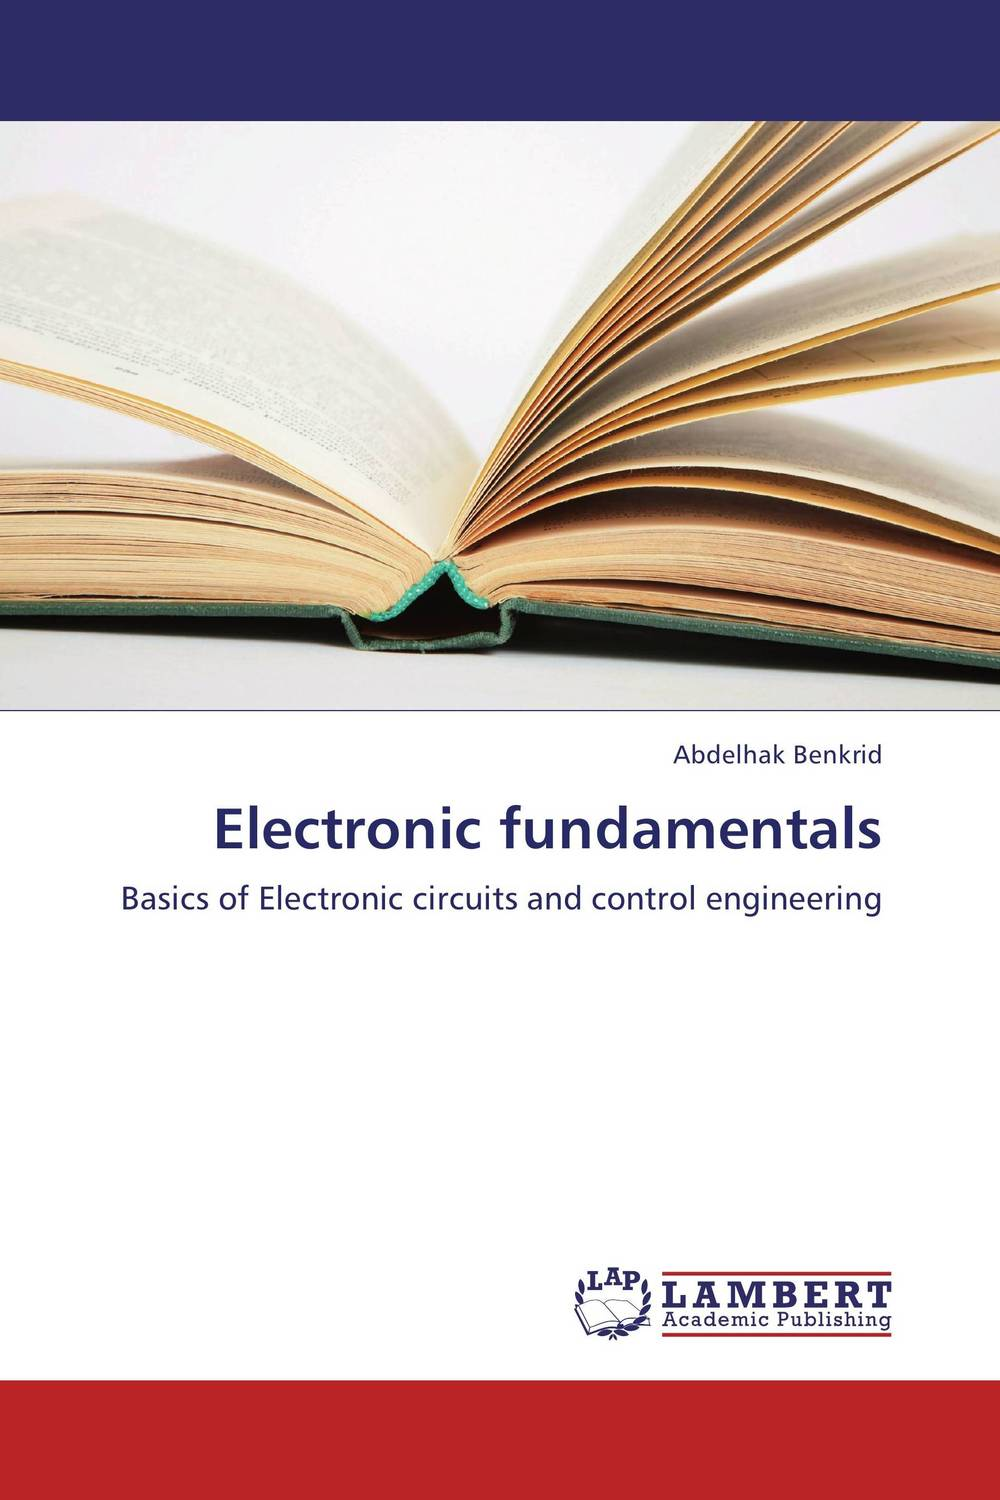 Electronic fundamentals handbook of the exhibition of napier relics and of books instruments and devices for facilitating calculation